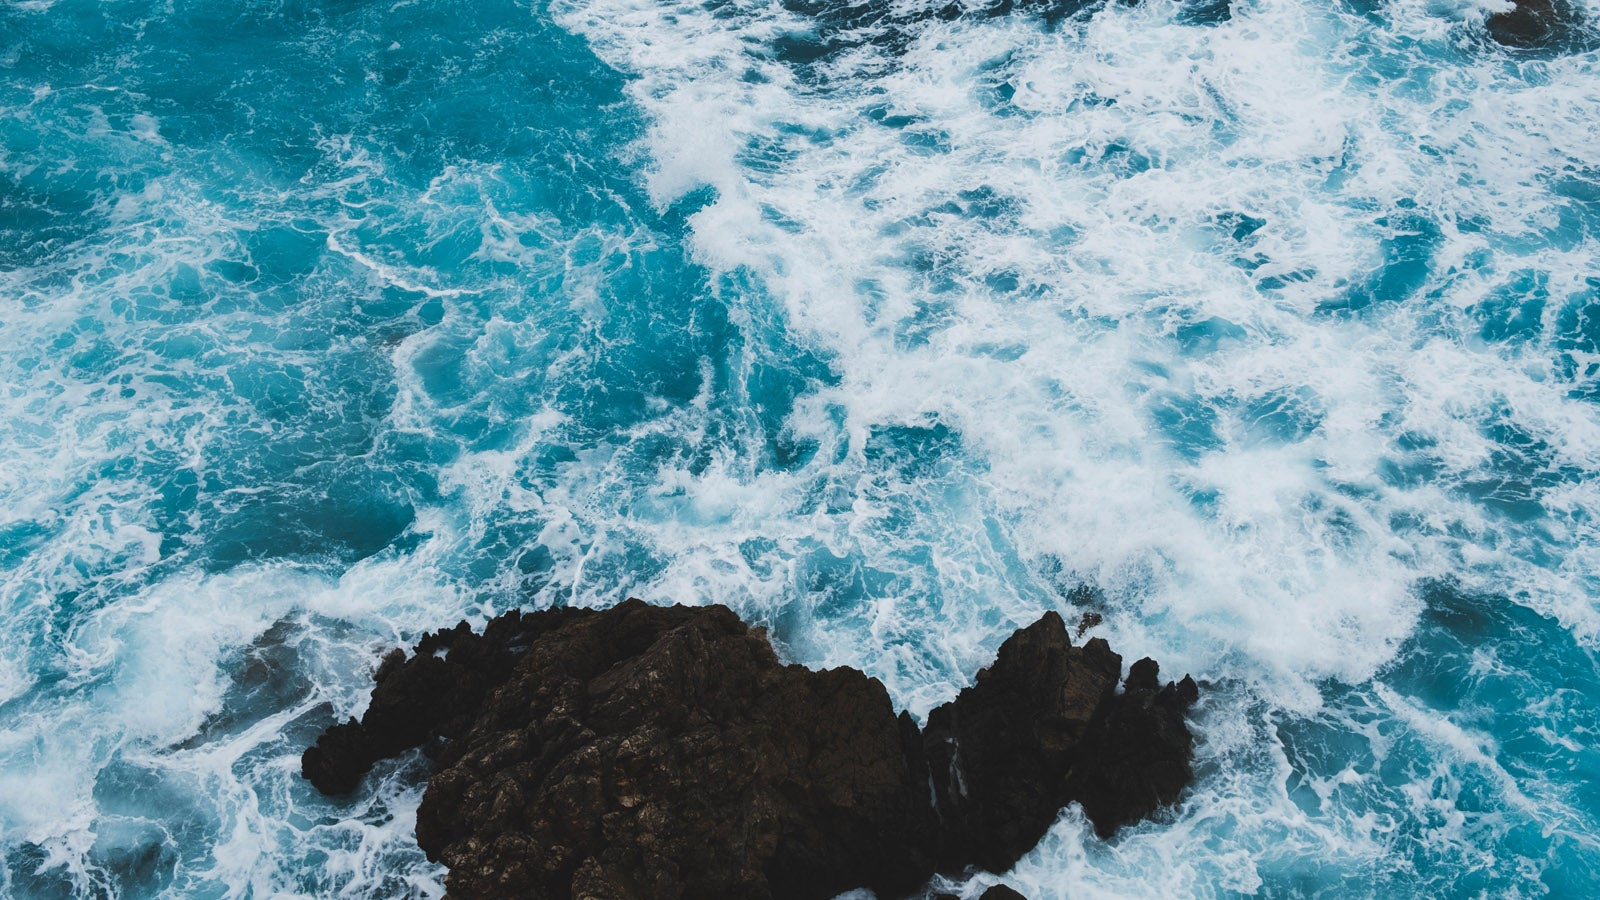 A photo of waves crashing against a rocky outcrop